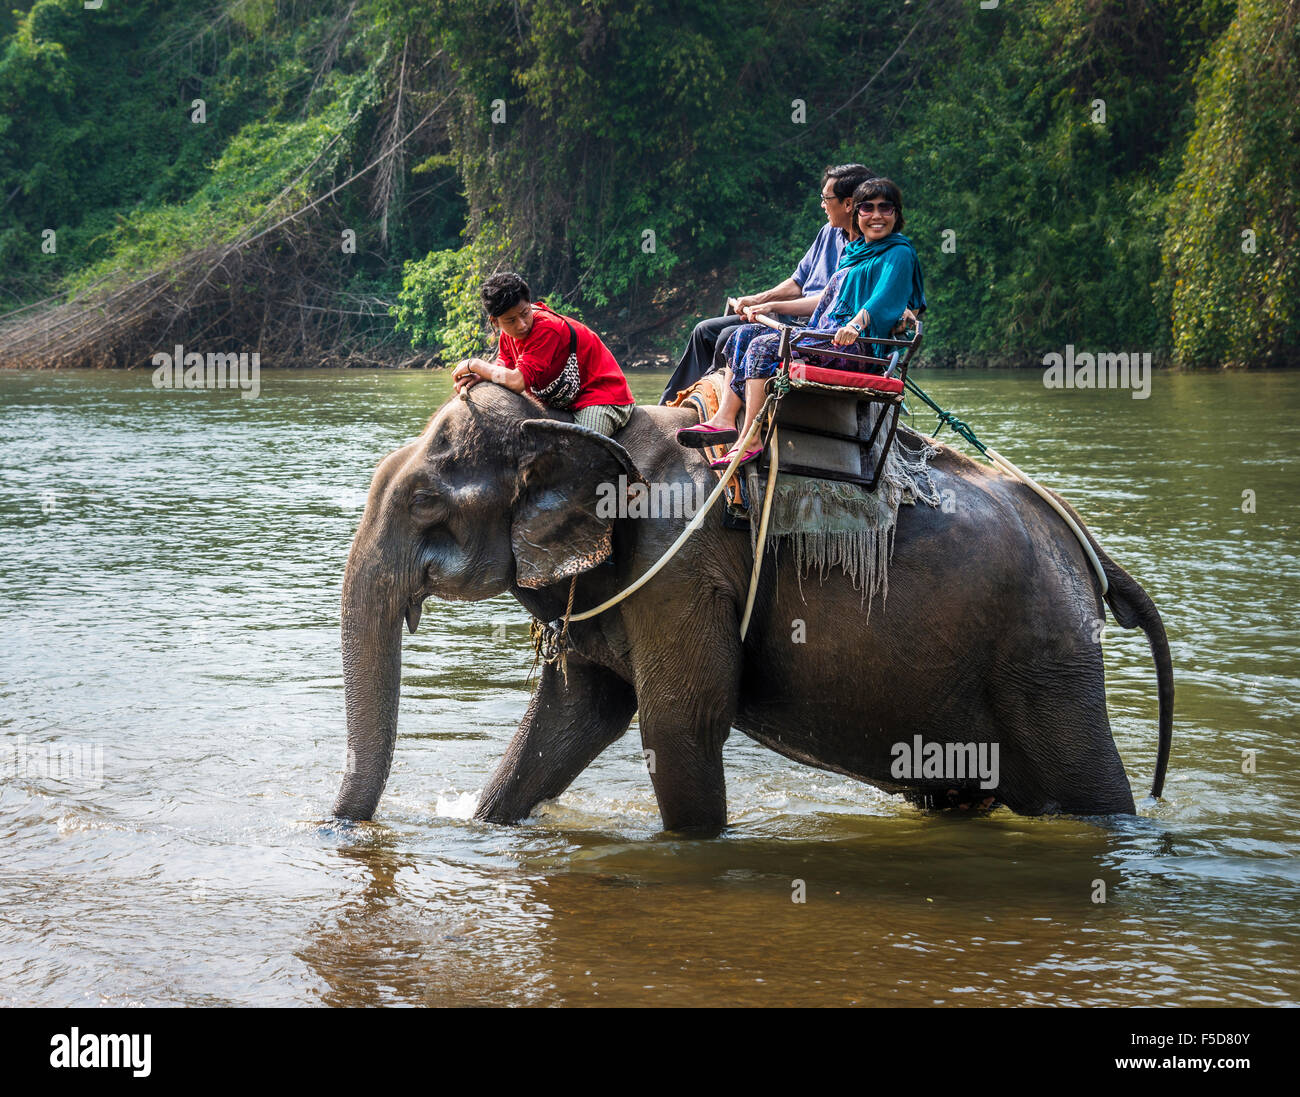 Two tourists riding elephant in water with mahout , Kanchanaburi Province, Central Thailand, Thailand - Stock Image